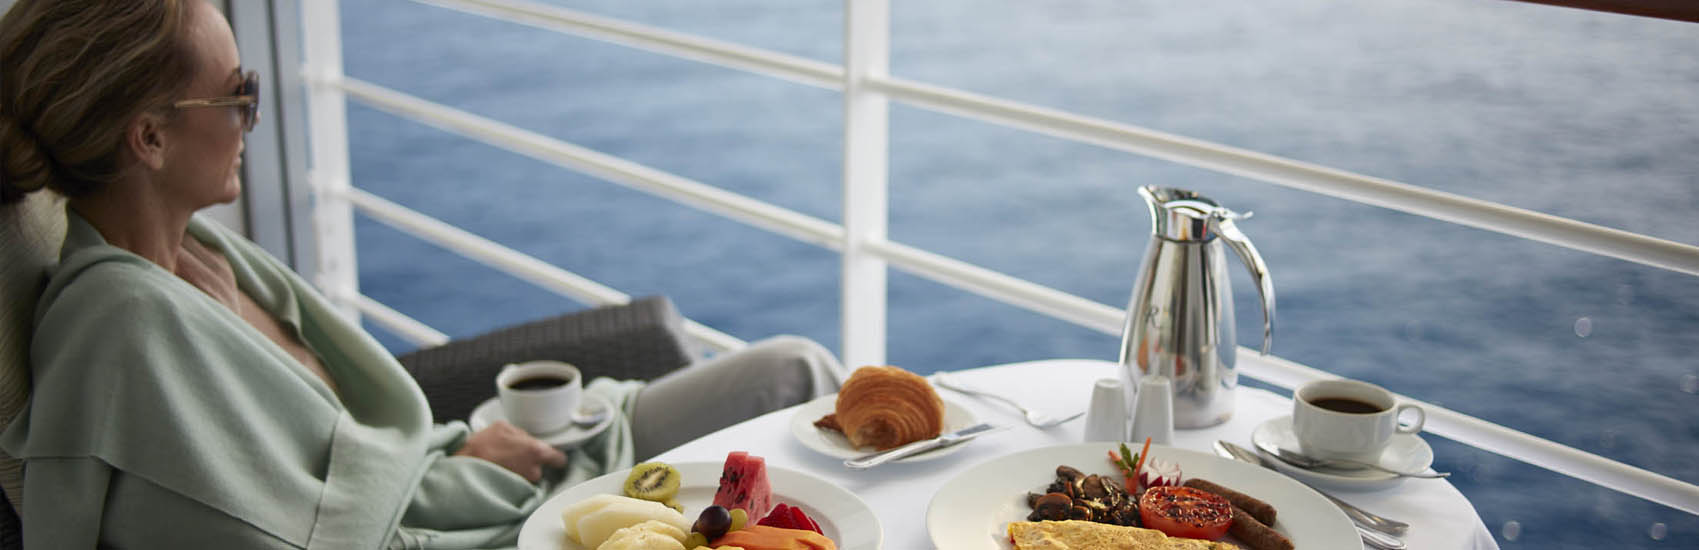 Canadian Resident 10% Savings on select Oceania Cruises voyages 1